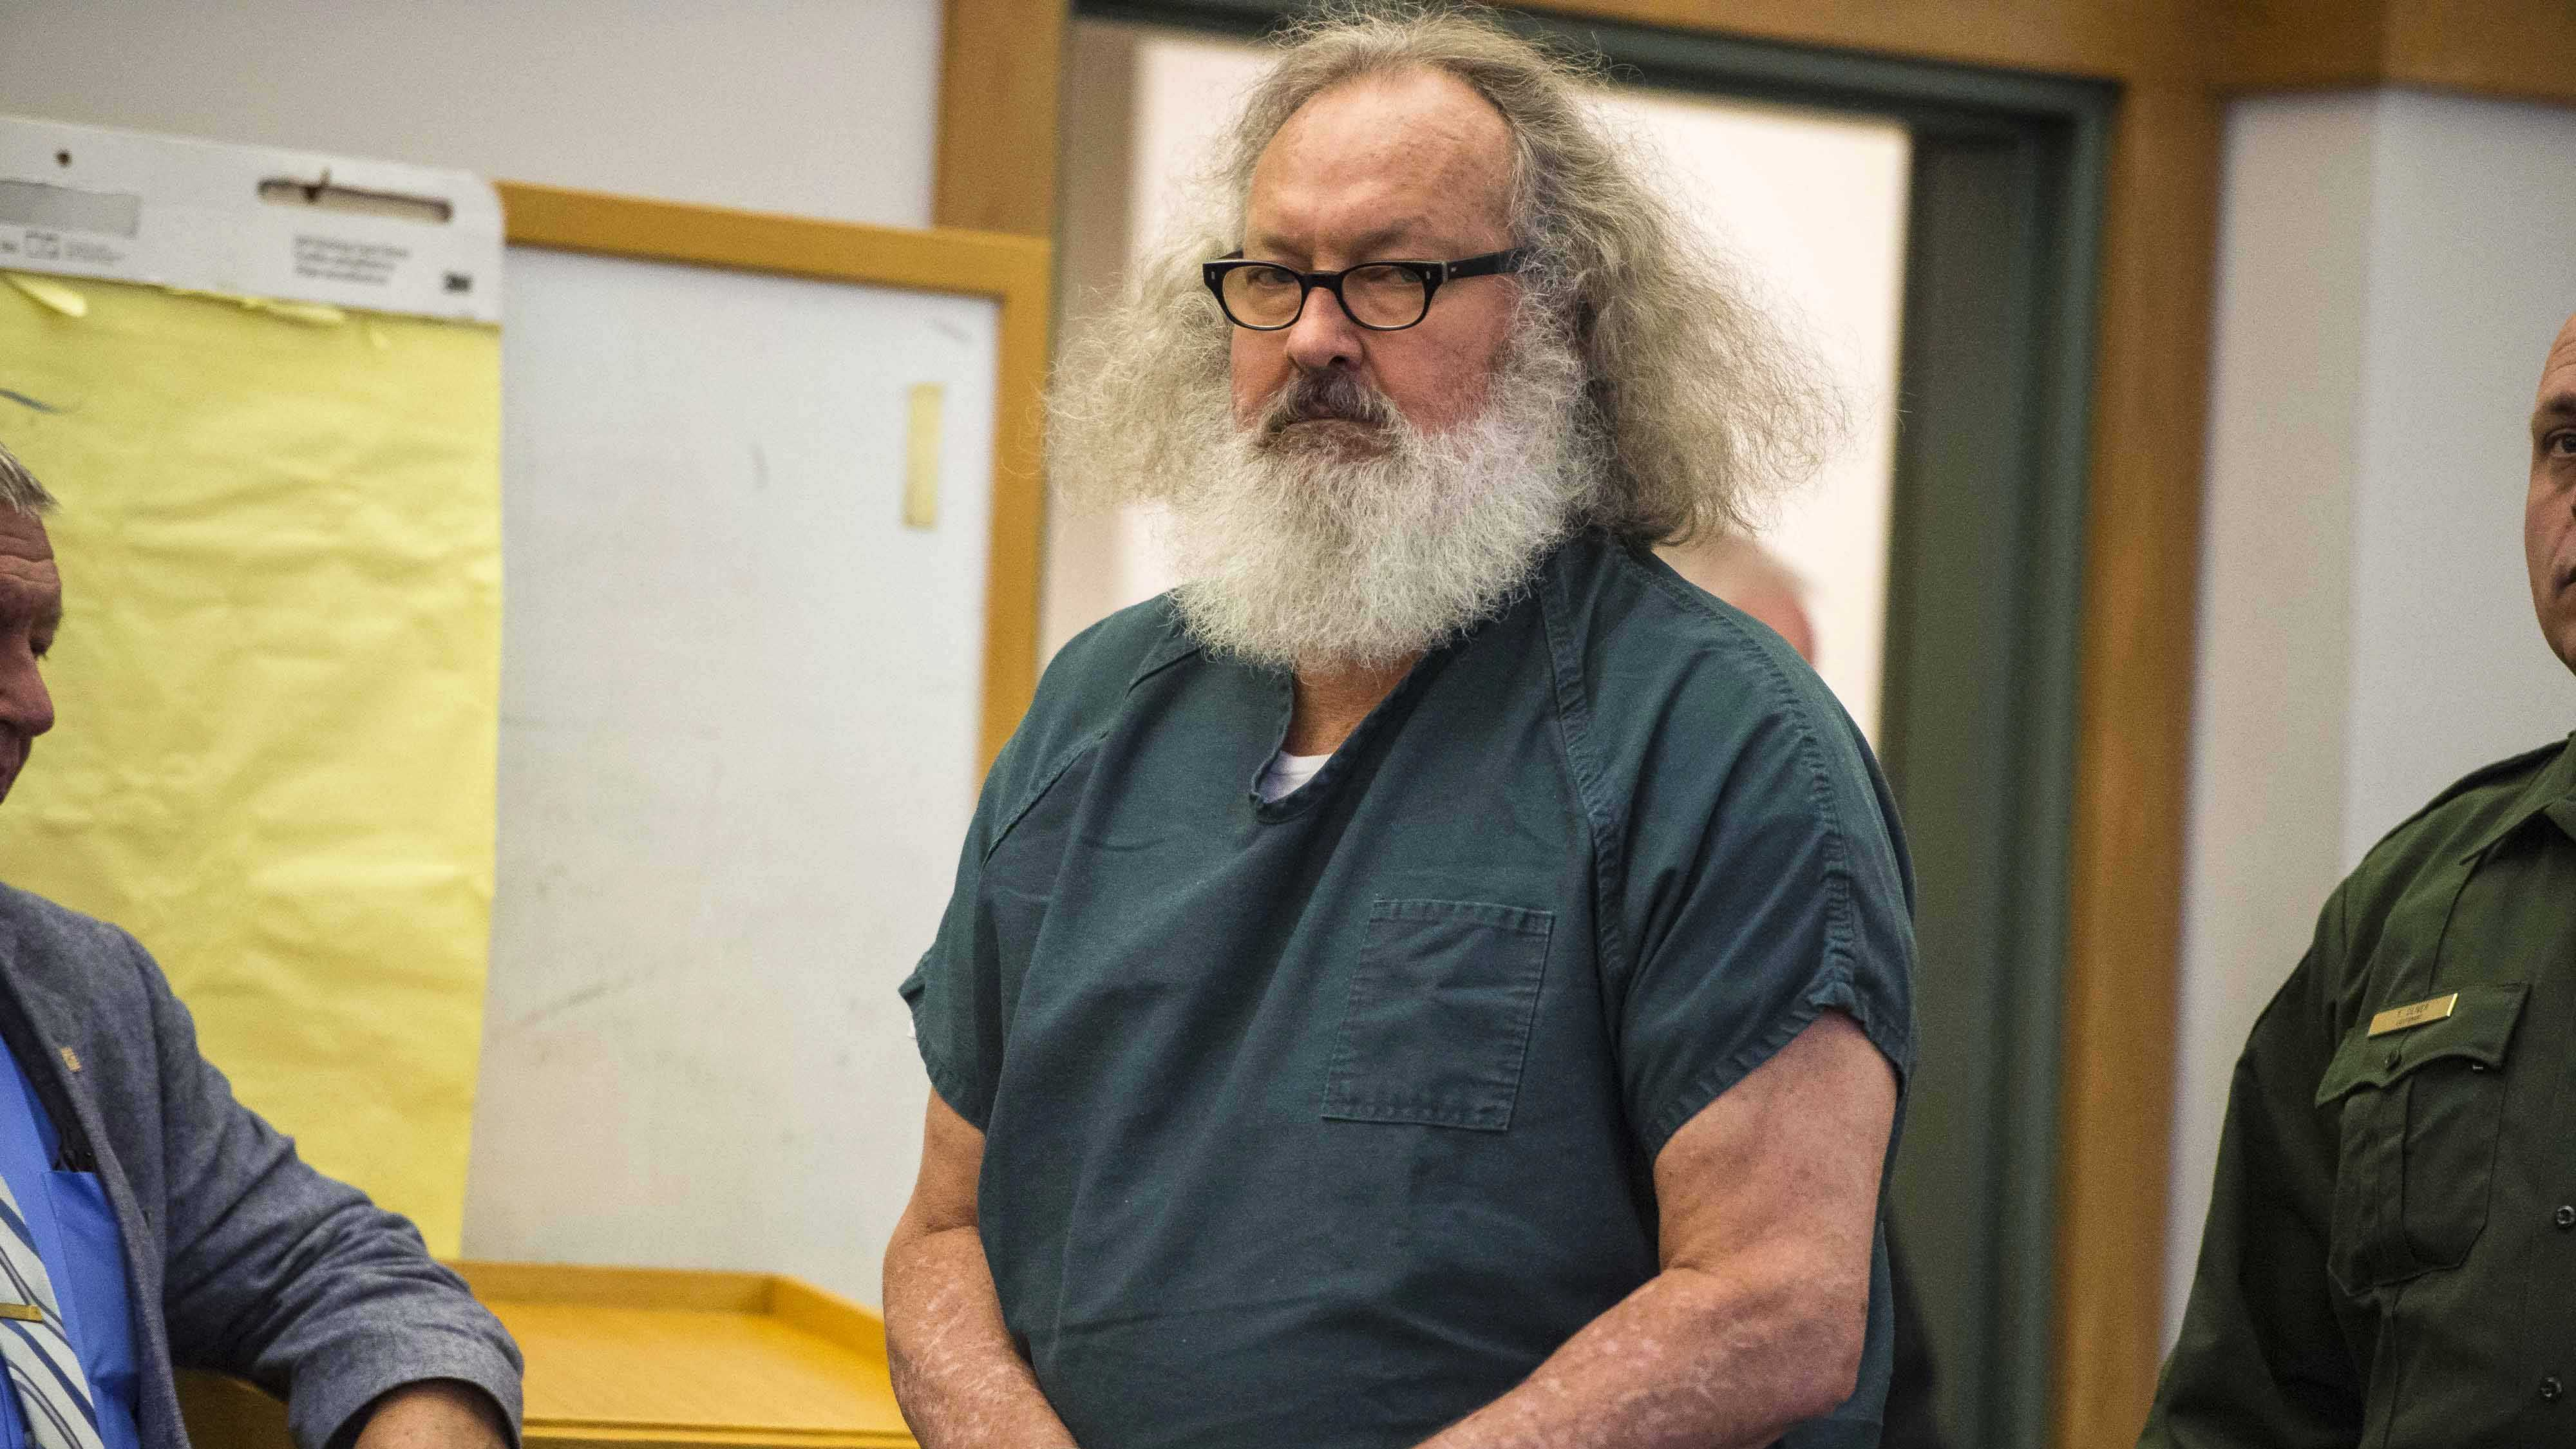 Actor Randy Quaid appears in Vermont Superior Court in St. Albans, Vt., on Thursday, Oct. 15, 2015. A Vermont judge has released Quaid and his wife Evi from custody and the couple says they'll now address 5-year-old criminal charges in California.